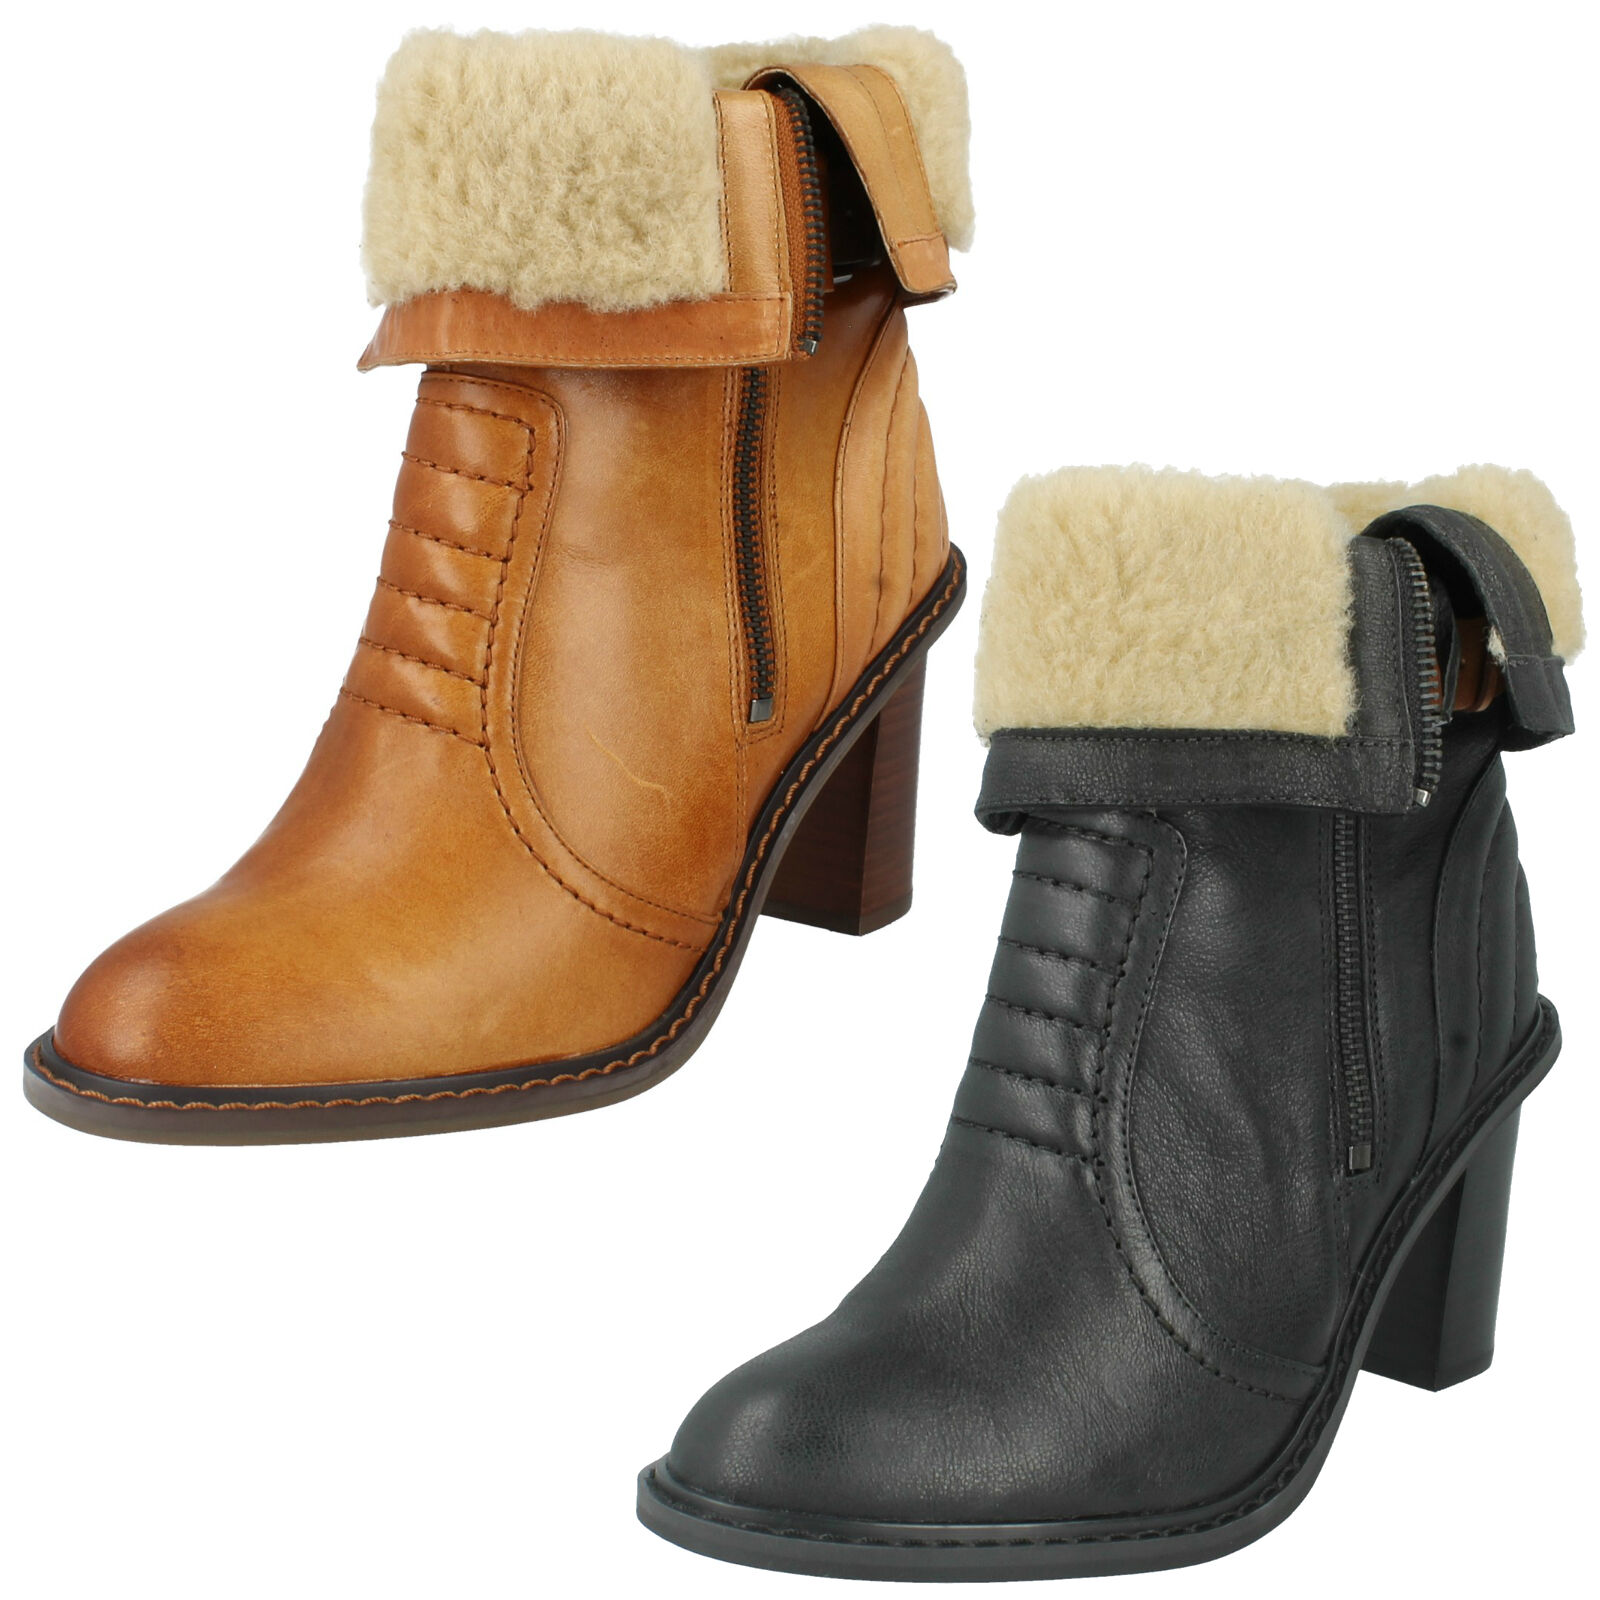 LADIES CLARKS LEATHER ZIP UP SMART HEELED FUR CUFF ANKLE BOOTS LISETTE blueES